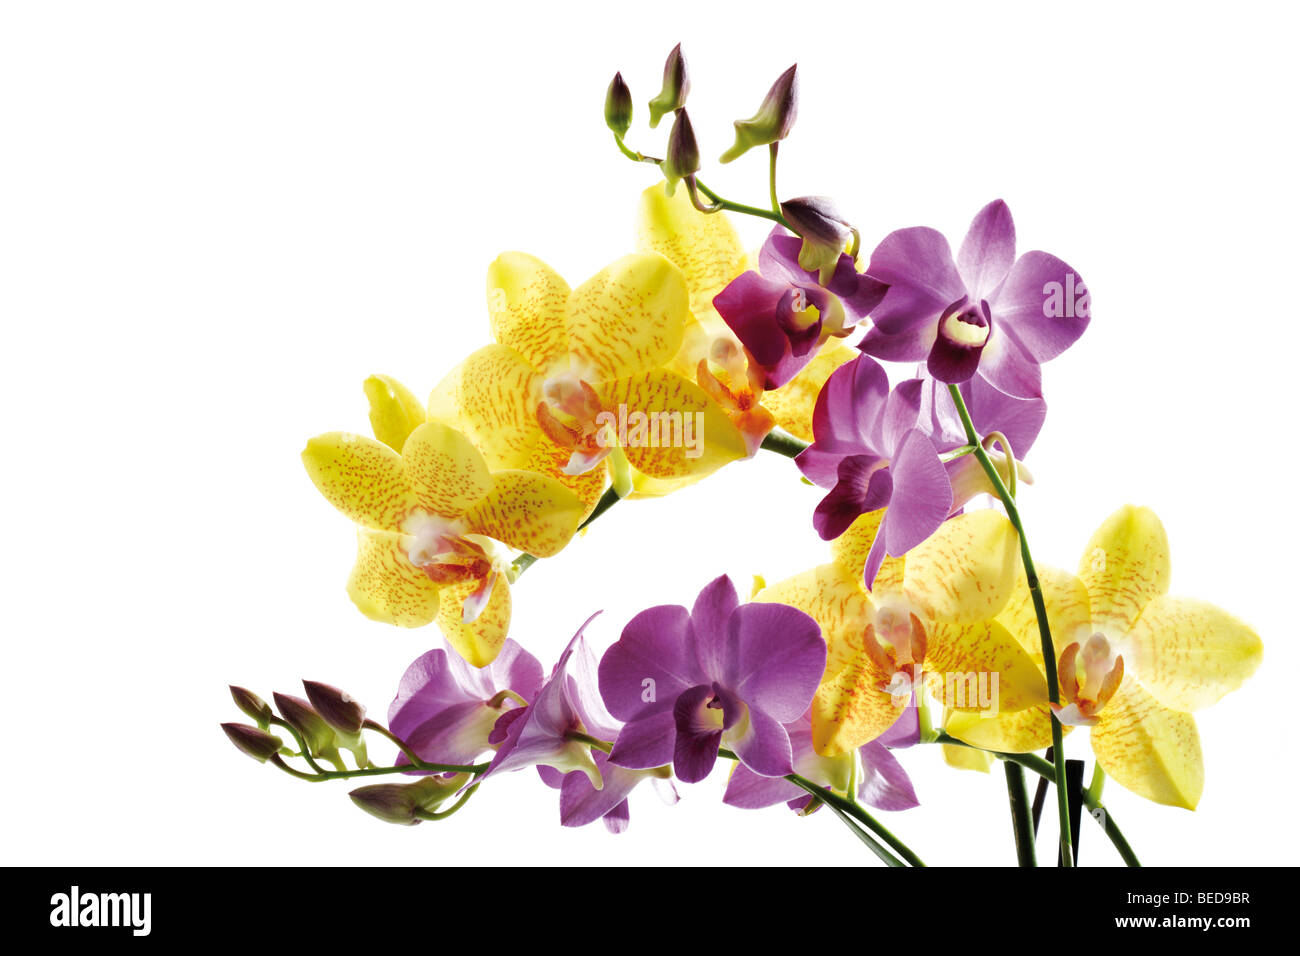 Orchids - Stock Image